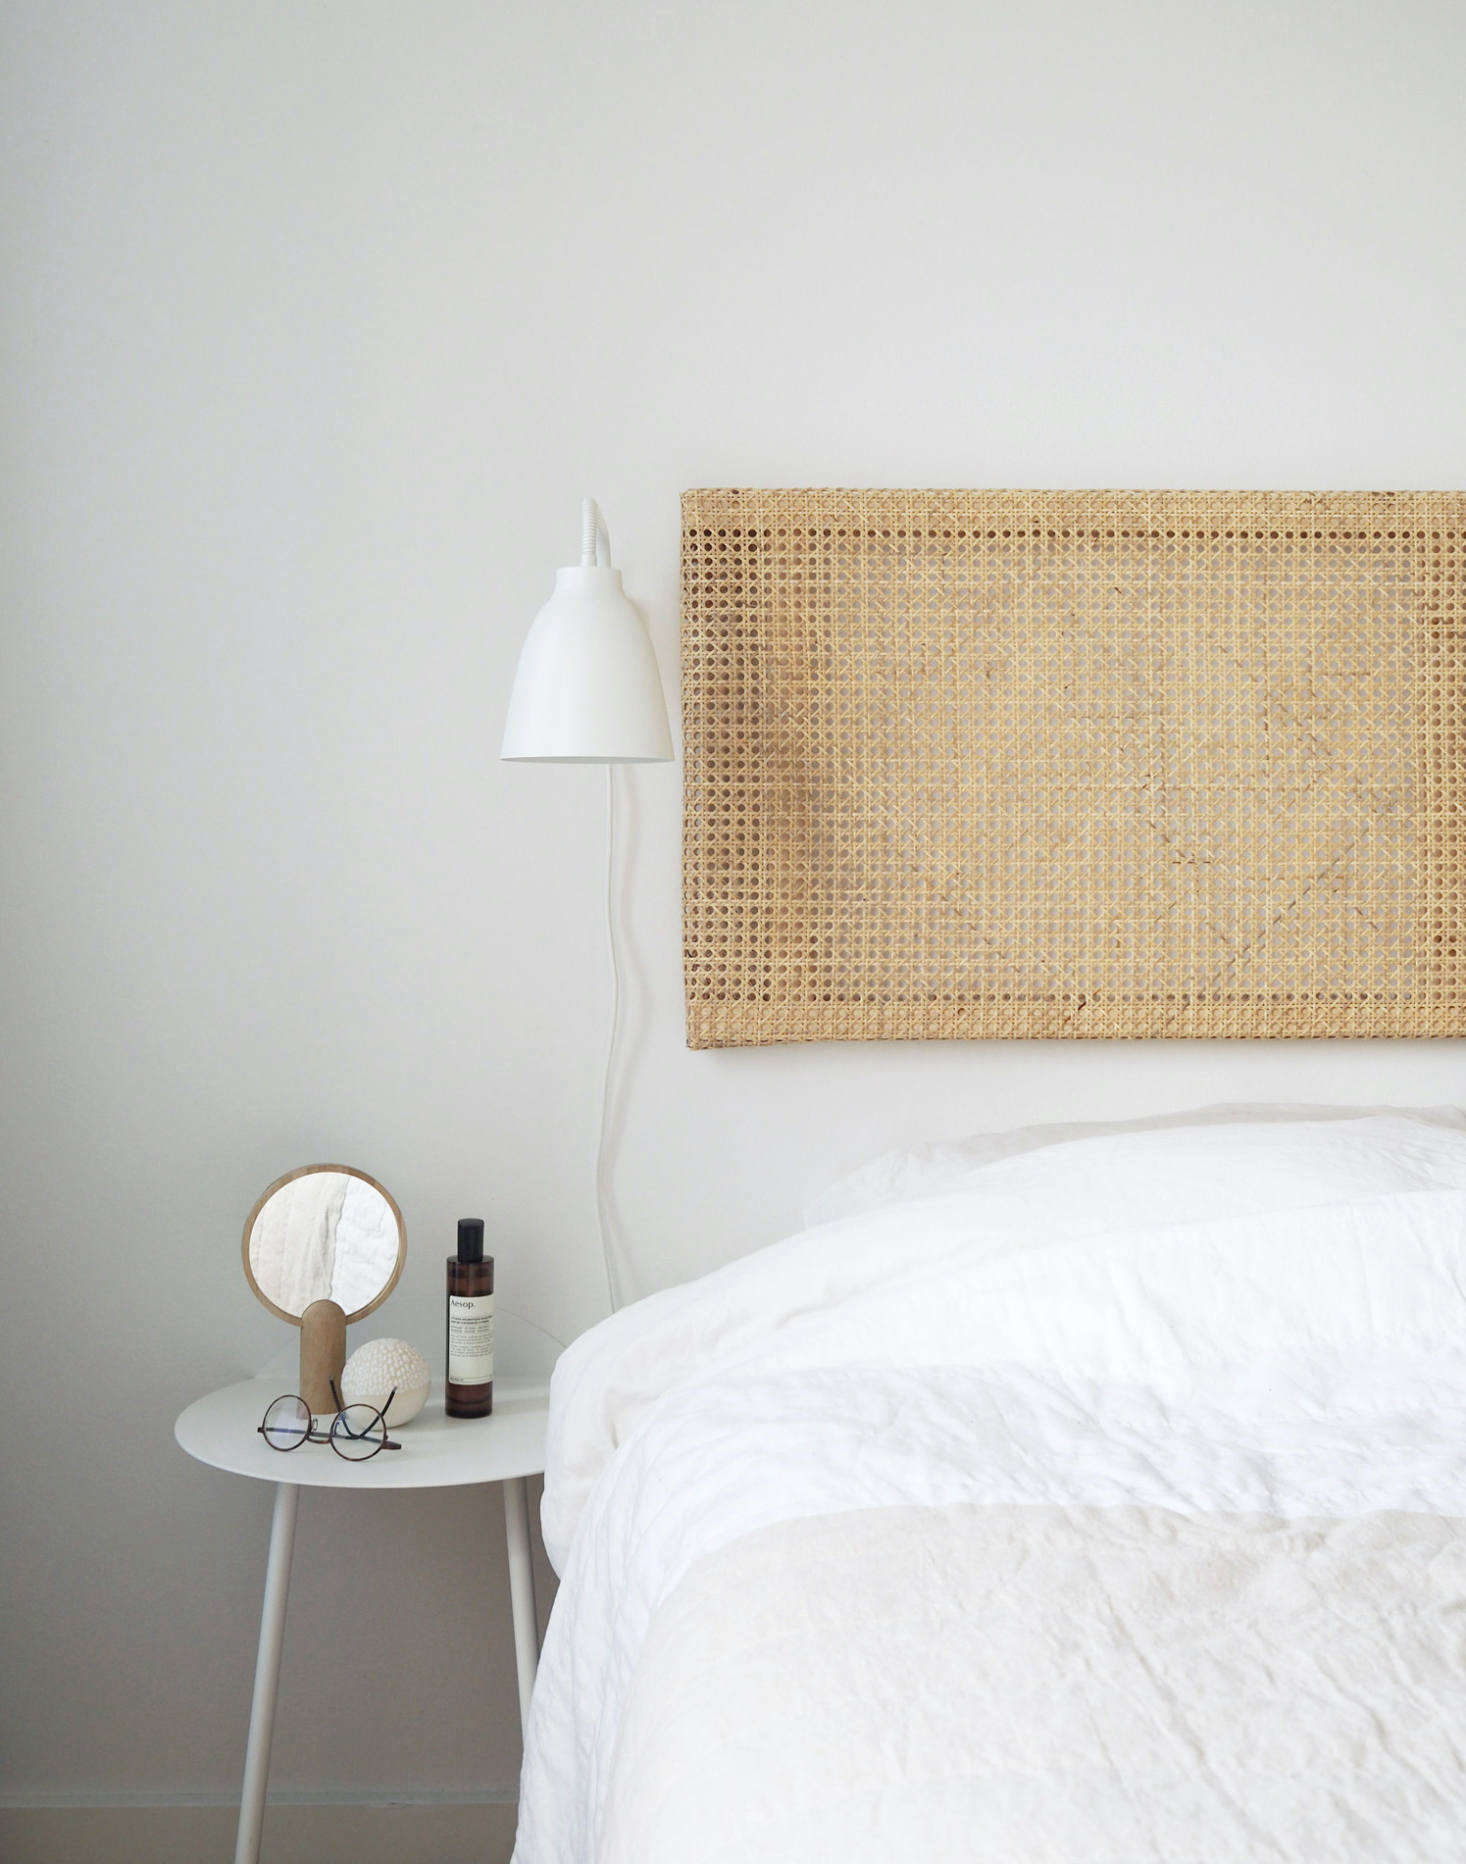 Copenhagen-based interior stylist and writer Caroline Bahrenscheer of the blog September Edit created this floating Rattan Headboard for her own bedroom.